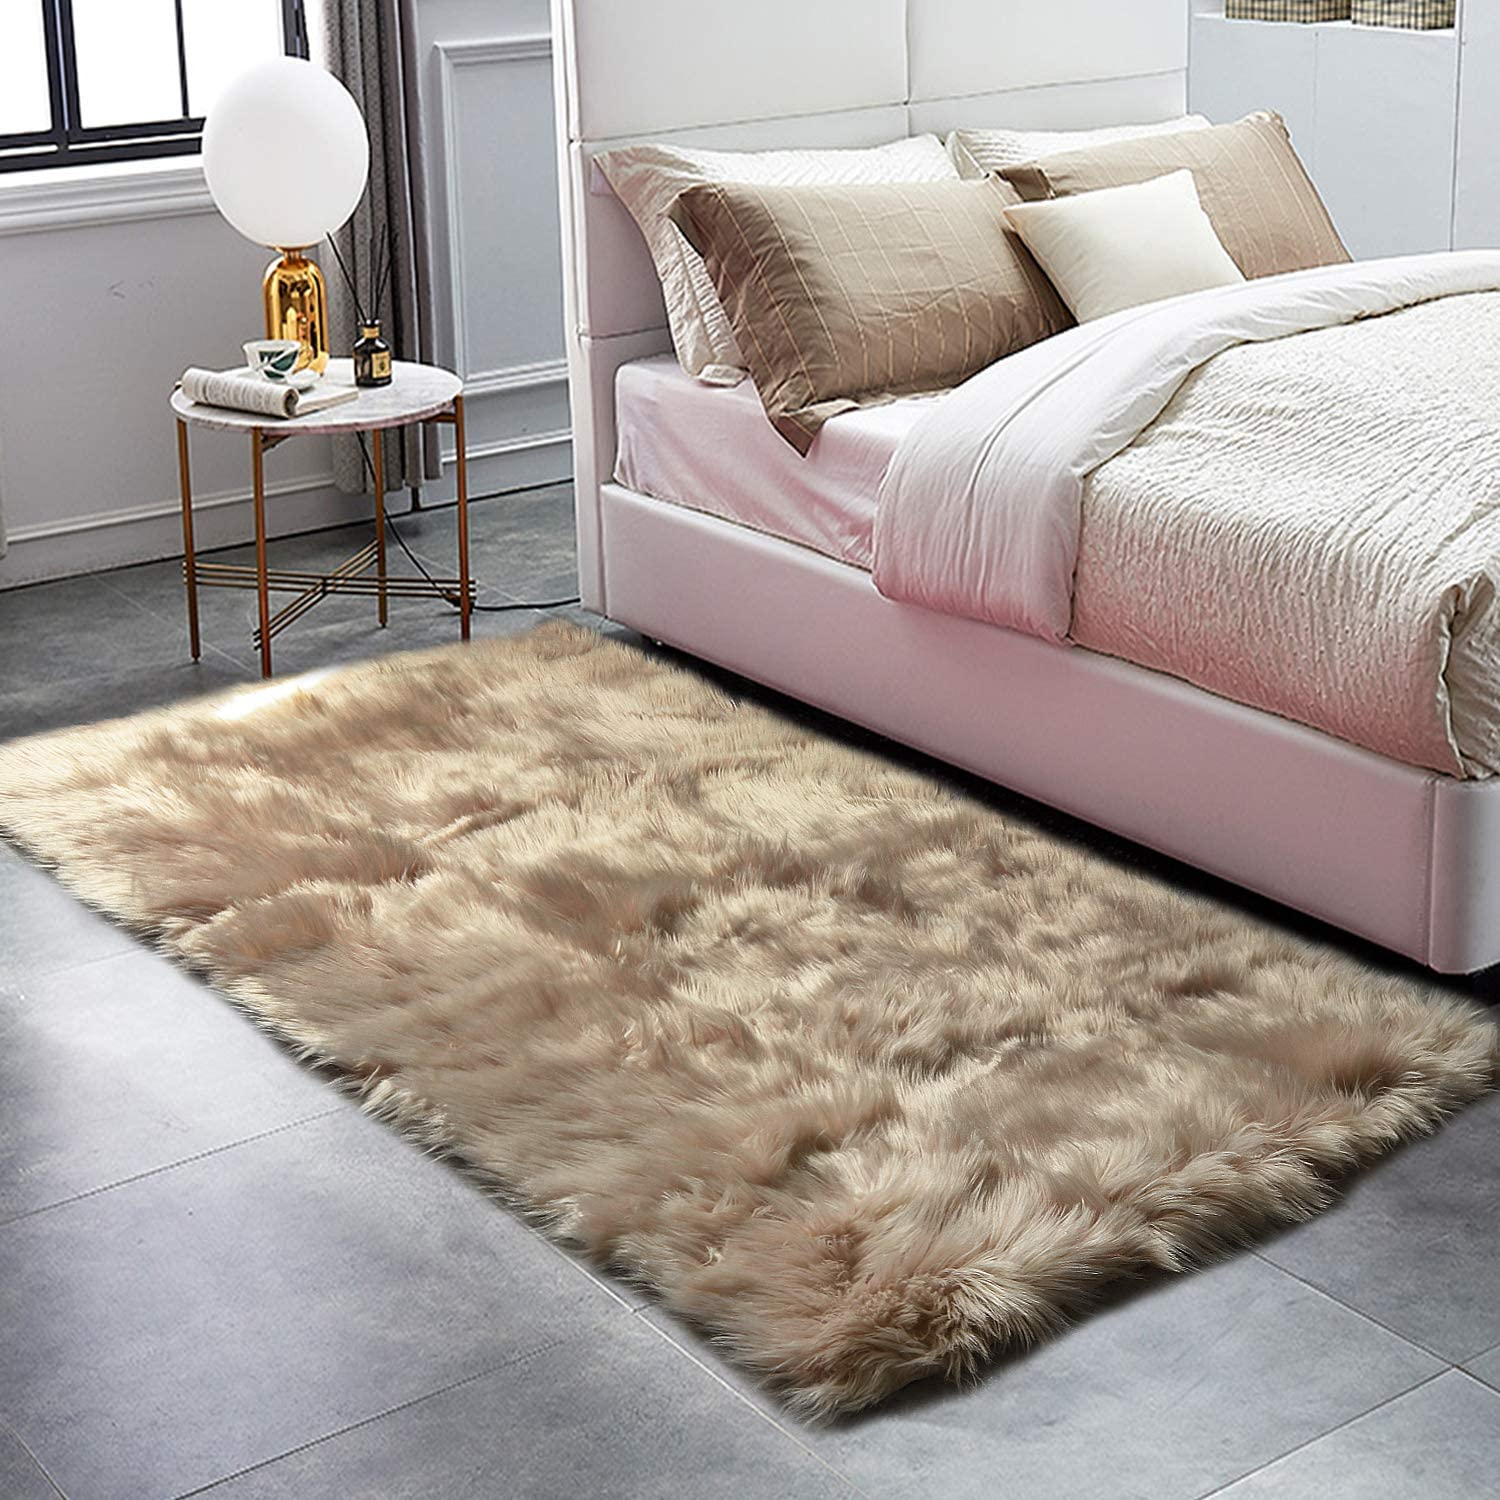 HAOCOO Faux Fur Sheepskin Rug Coffee Shag Chair Coach Covers 4'x 5.3' Fluffy Wool Area Rug Large Soft Kids Play Mat Rectangle Floor Carpet for Bedroom Living Room Bedside Nursery Home Decor